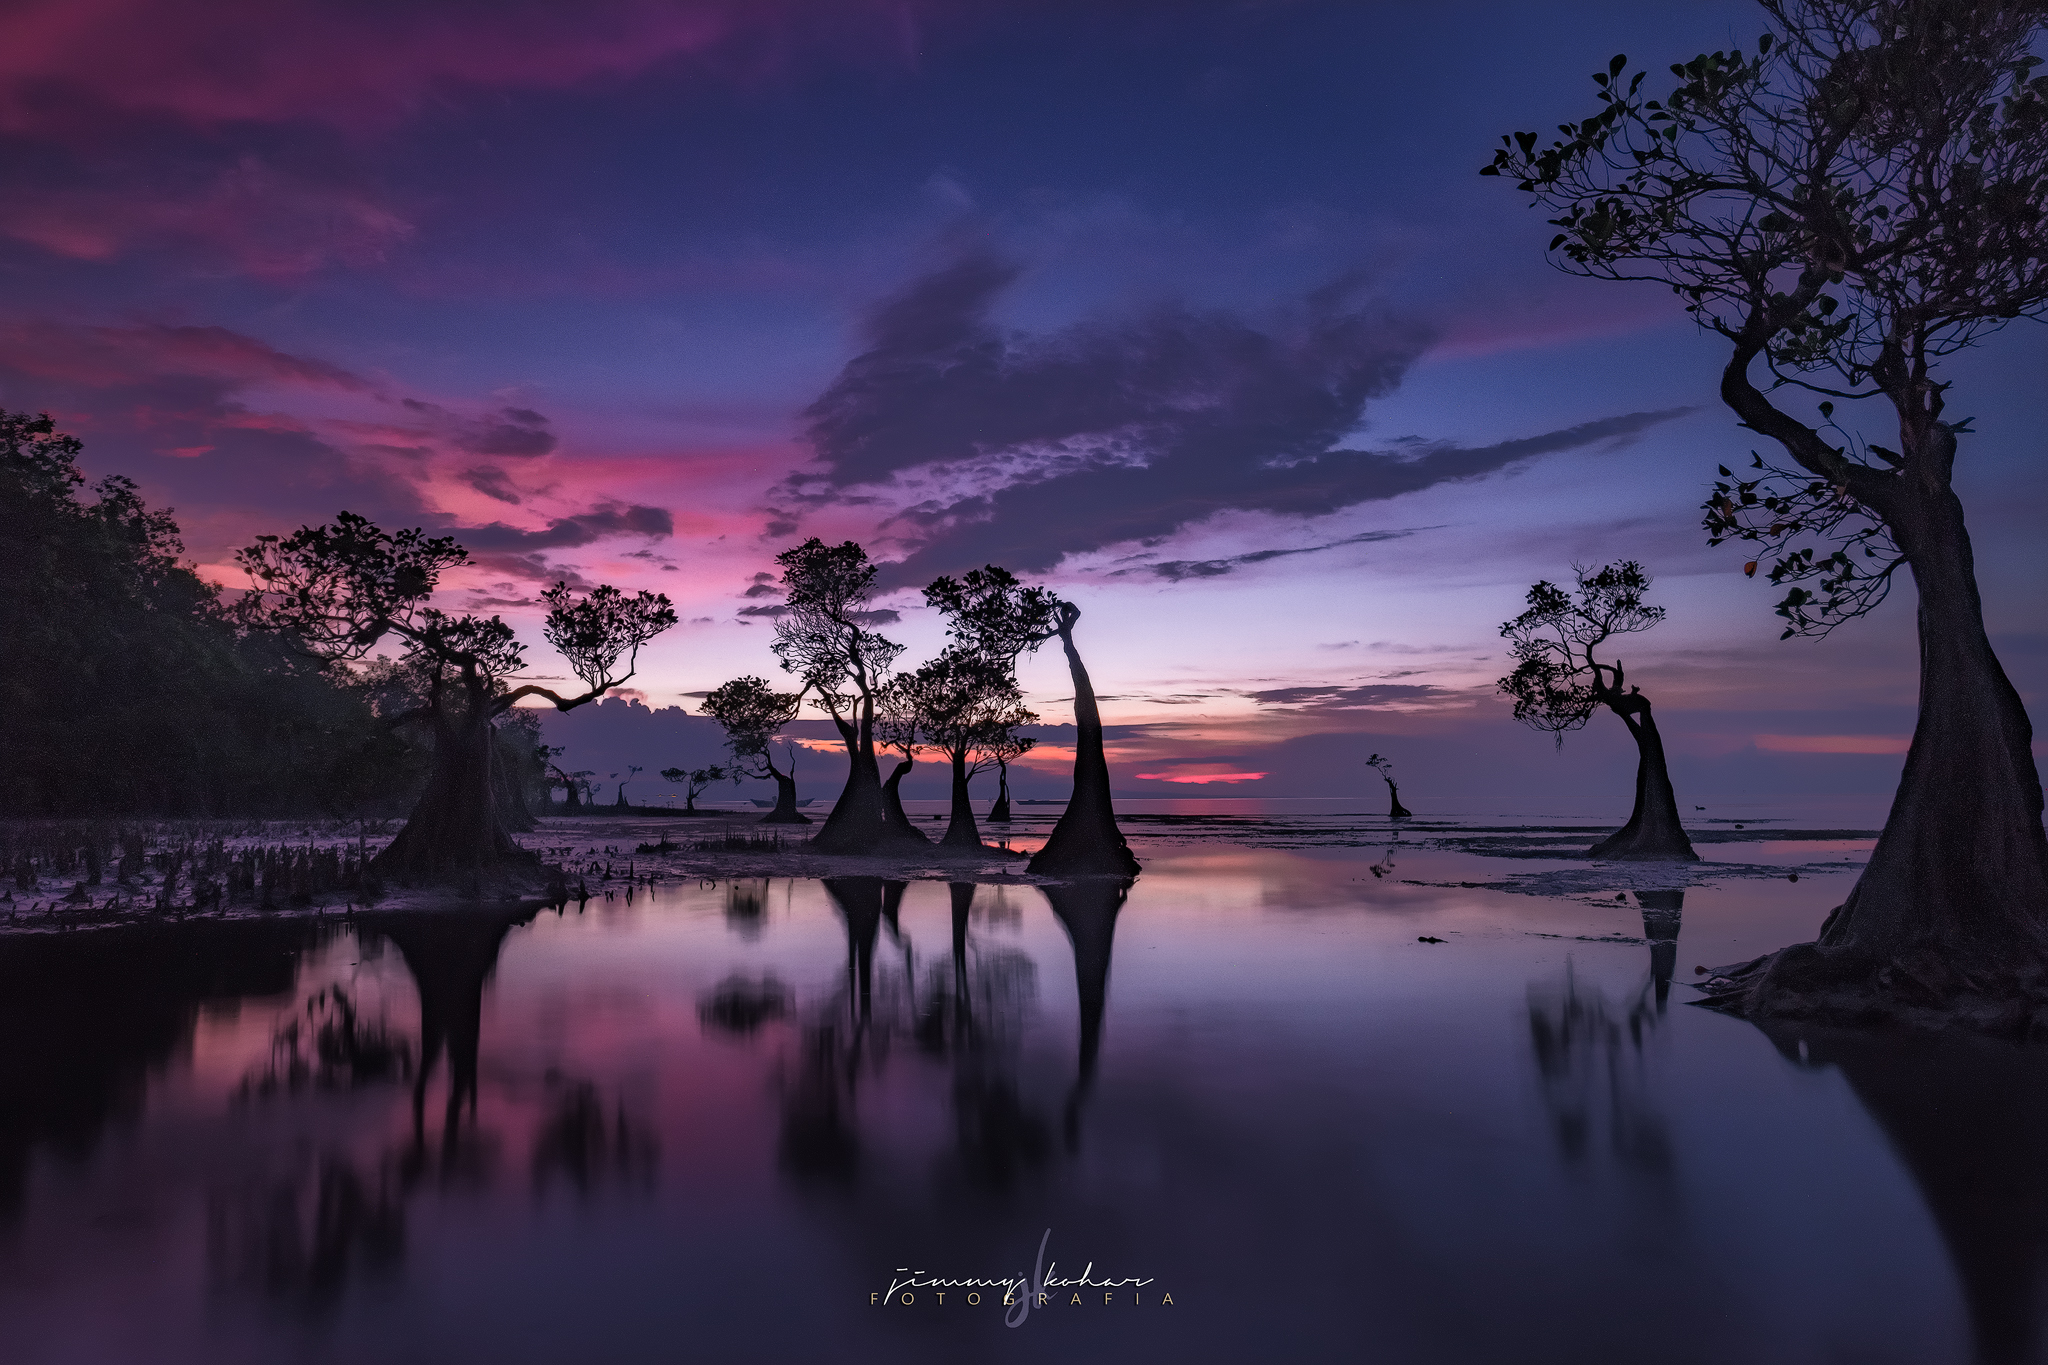 Mangrove Trees of Walakiri Beach, Indonesia